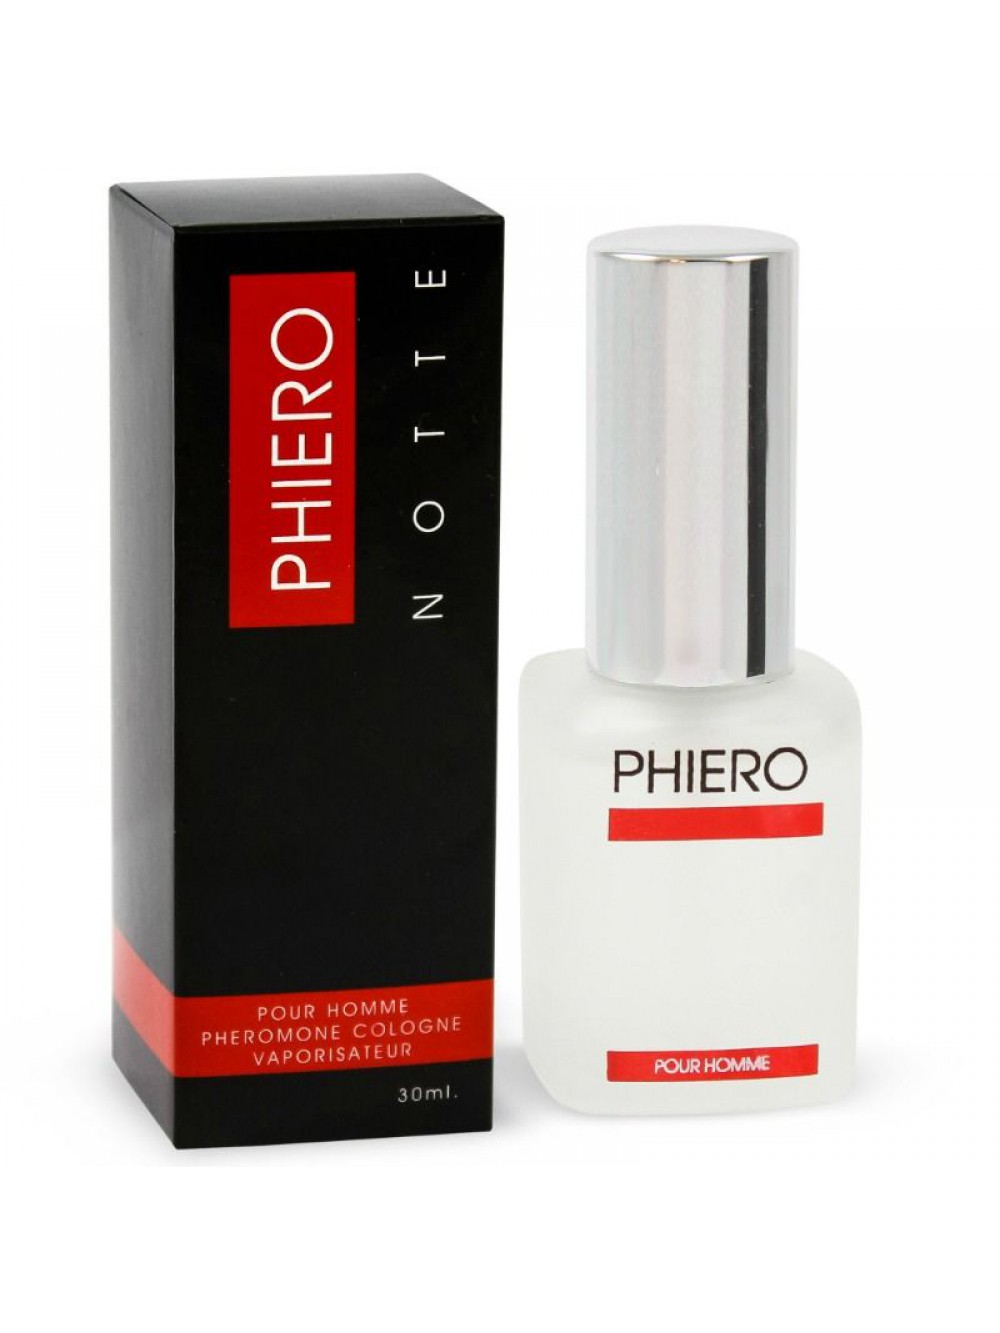 PHIERO NOTTE PERFUME WITH PHEROMONES FOR MEN 8437012718203